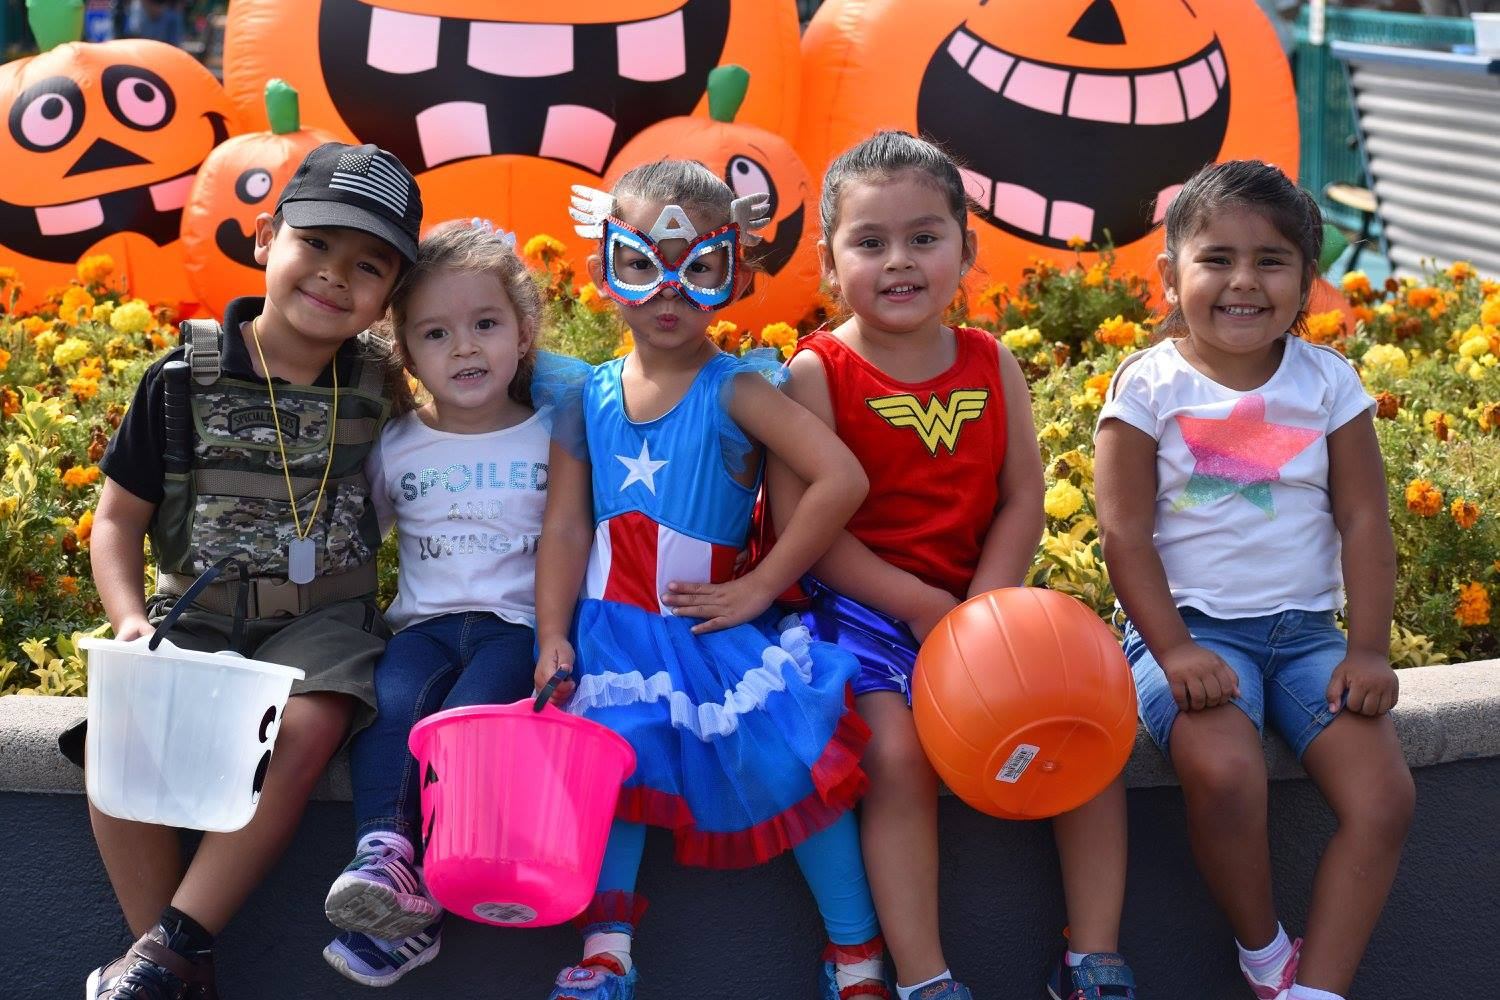 Adventure City\u0027s Boo,Tastic Halloween Party + Win Tickets